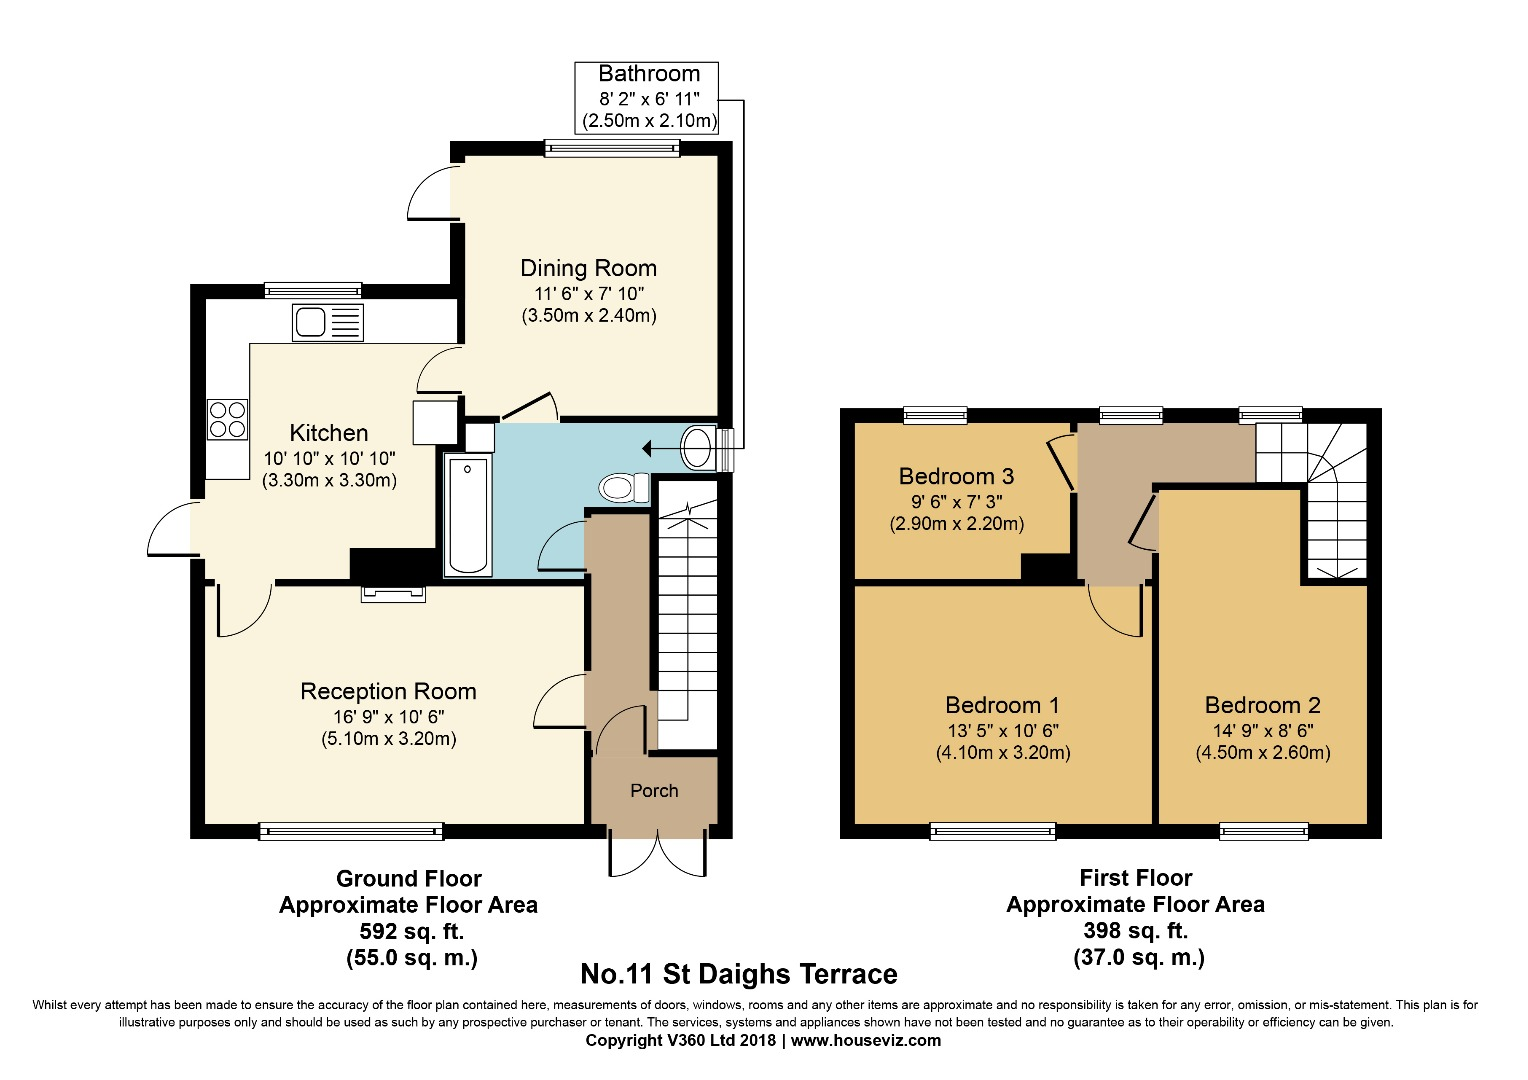 3 bed Semi-Detached for sale on No.11 St. Daighs Terrace, Inniskeen, Co. Monaghan - Property Floorplan